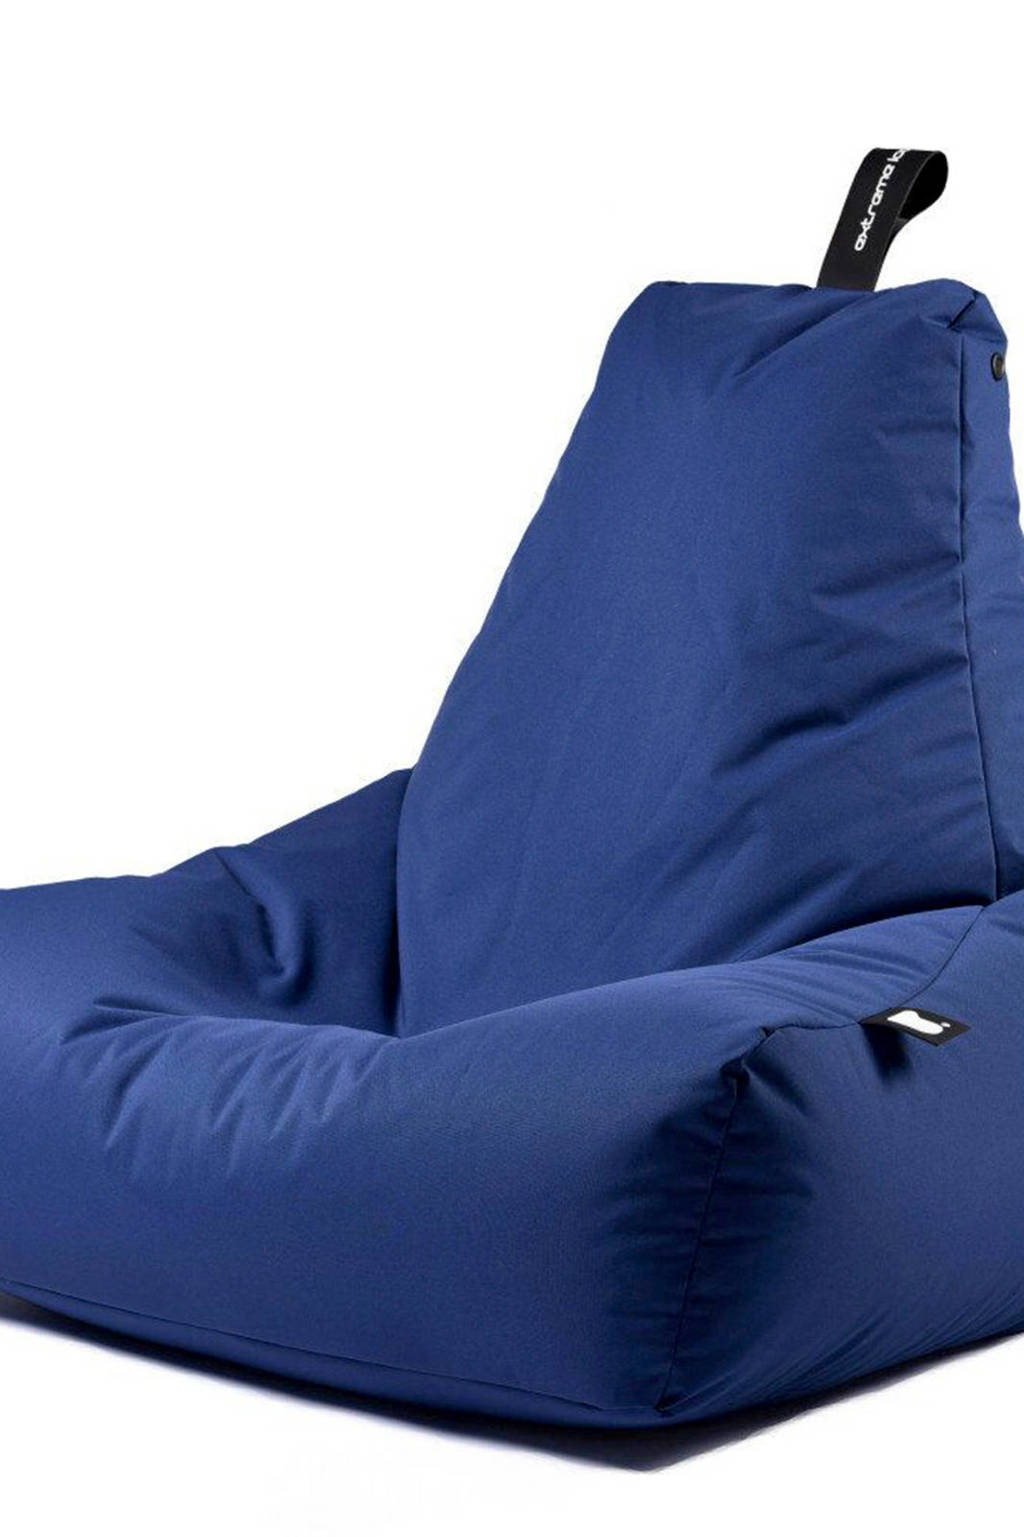 Extreme Lounging B-Bag Mighty-B zitzak, Blauw